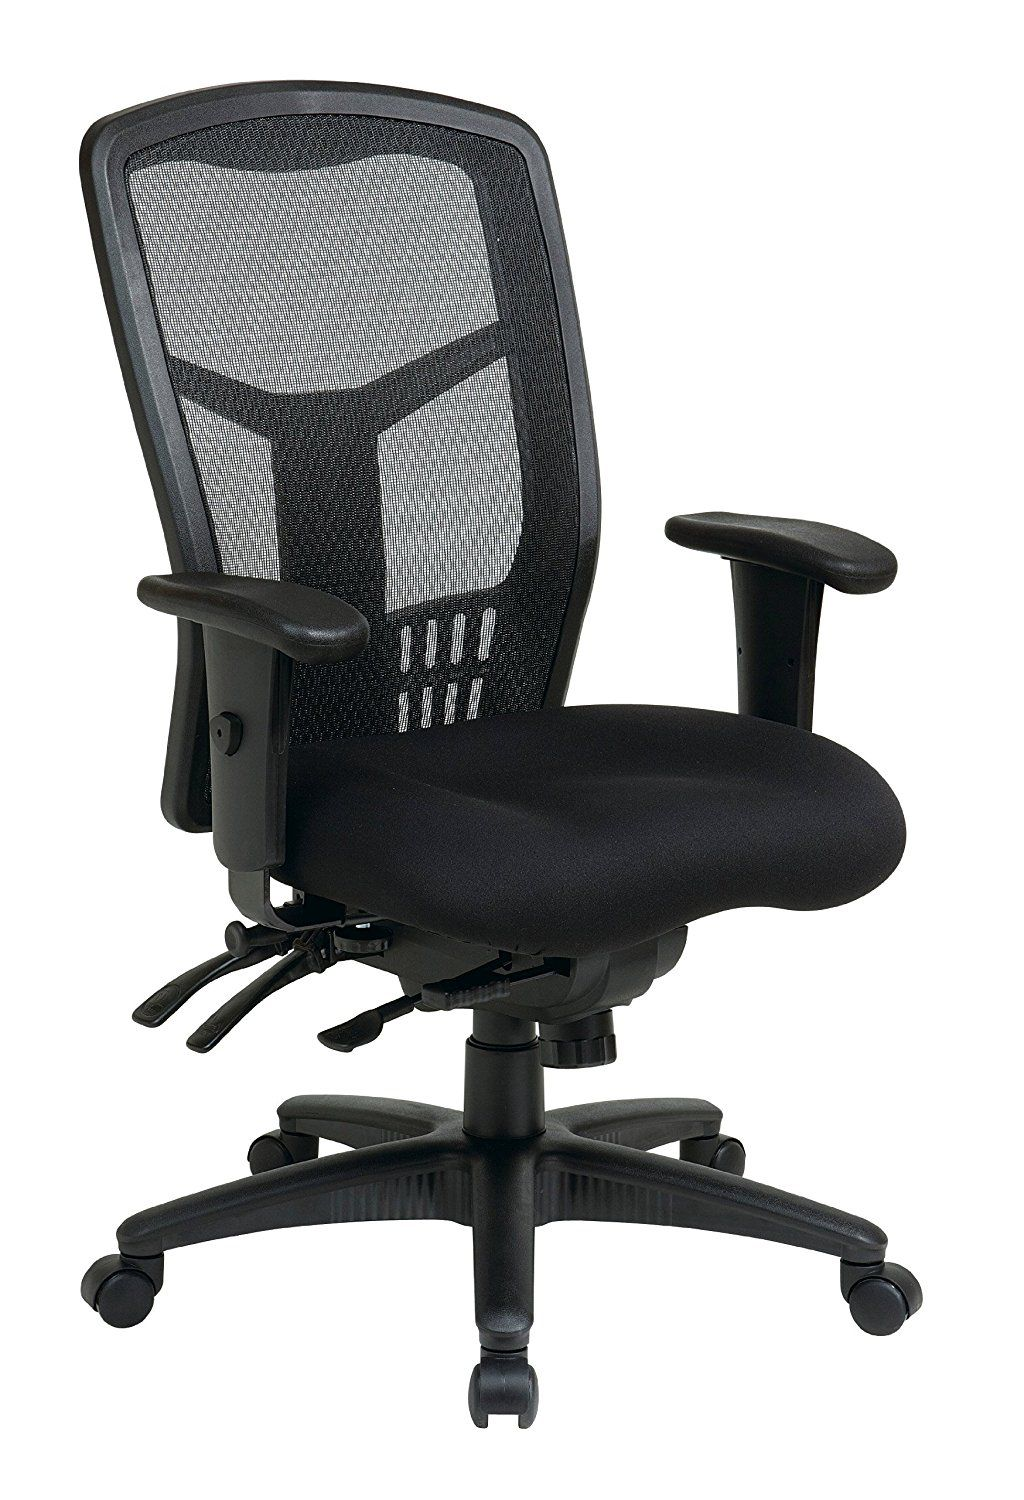 Lower Back Support For Office Chair The 7 Best Ergonomic Office Chairs Of 2019